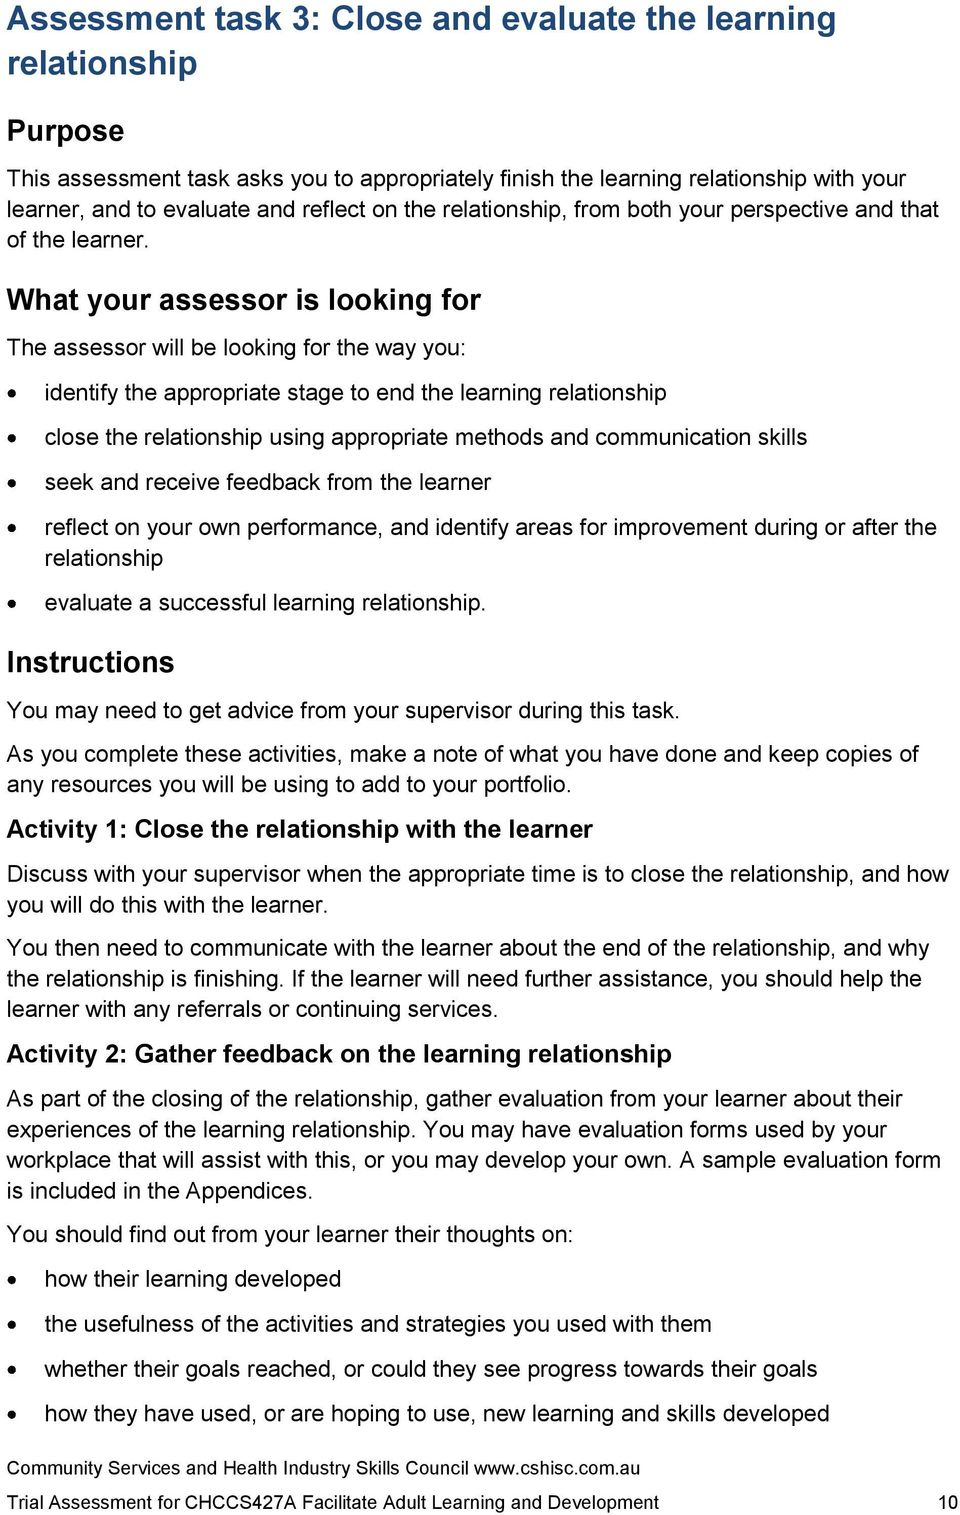 What your assessor is looking for The assessor will be looking for the way you: identify the appropriate stage to end the learning relationship close the relationship using appropriate methods and